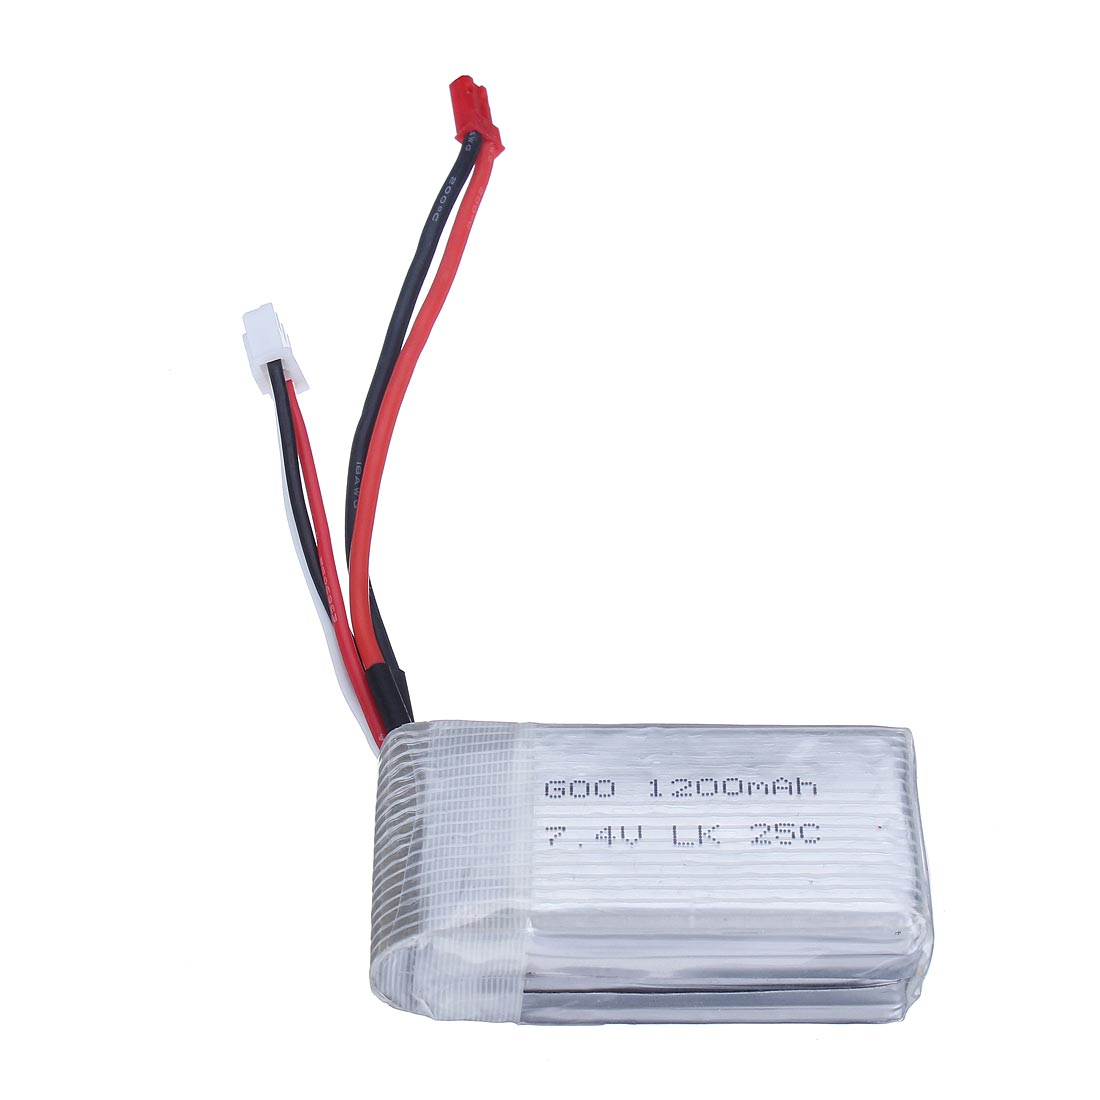 Battery Charging Cables : Buy wltoys battery charging set v charger